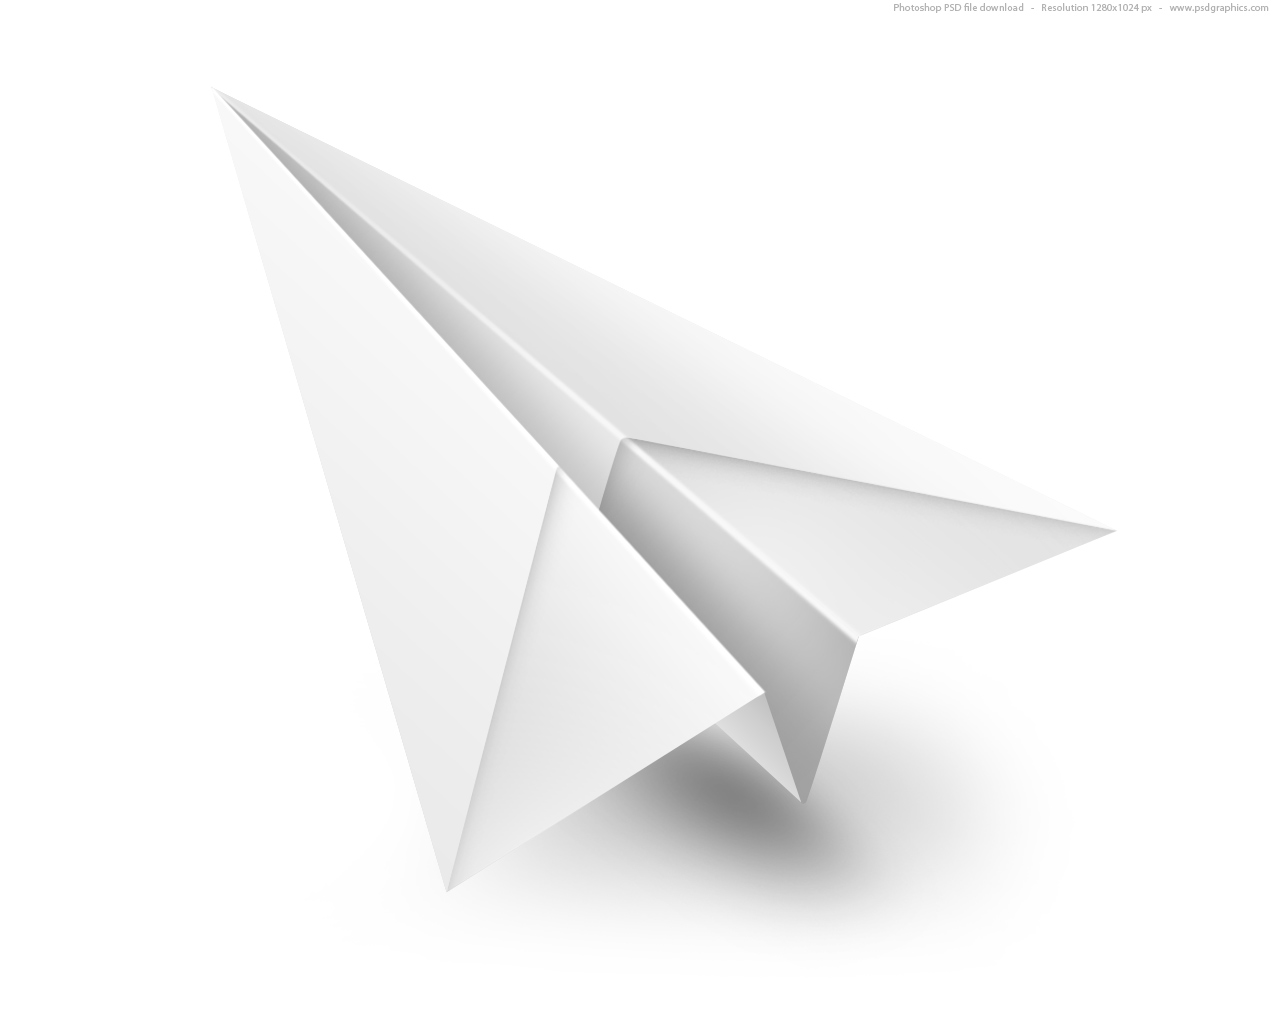 15 Paper Airplane PSD Images